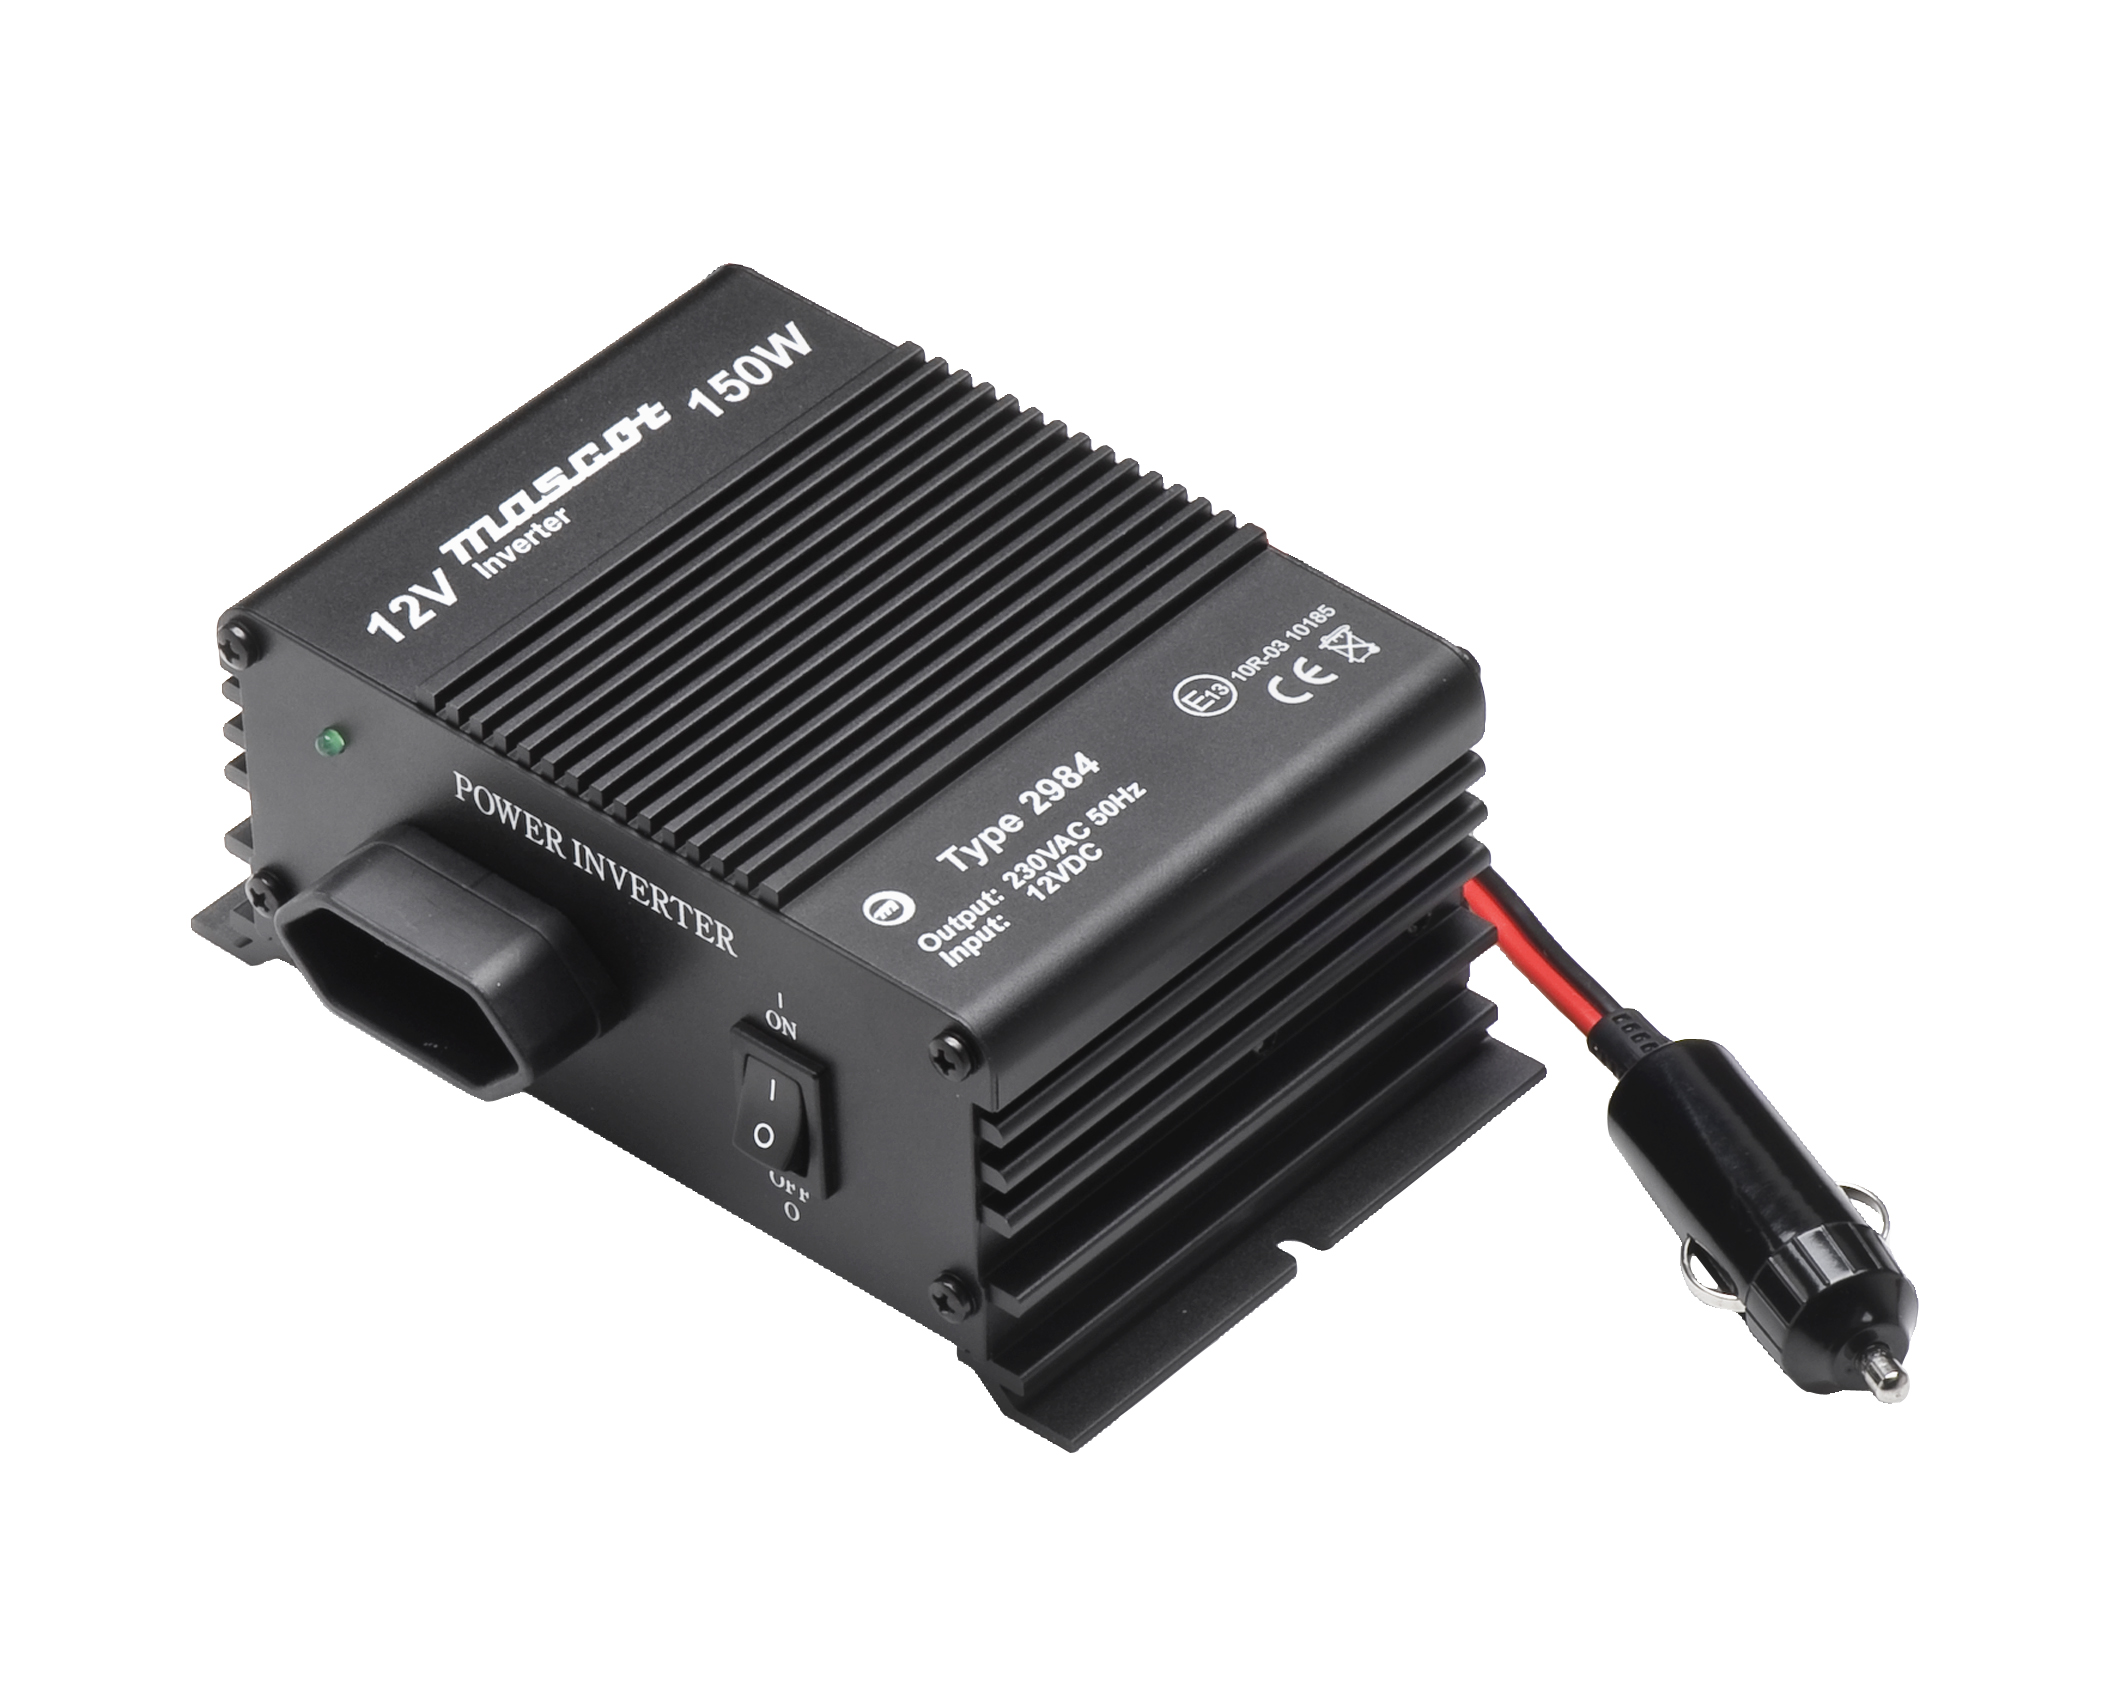 Dc Ac Inverters 12 Volt To Power Inverter Model 2984 150 W Max Out 24 Vdc Input